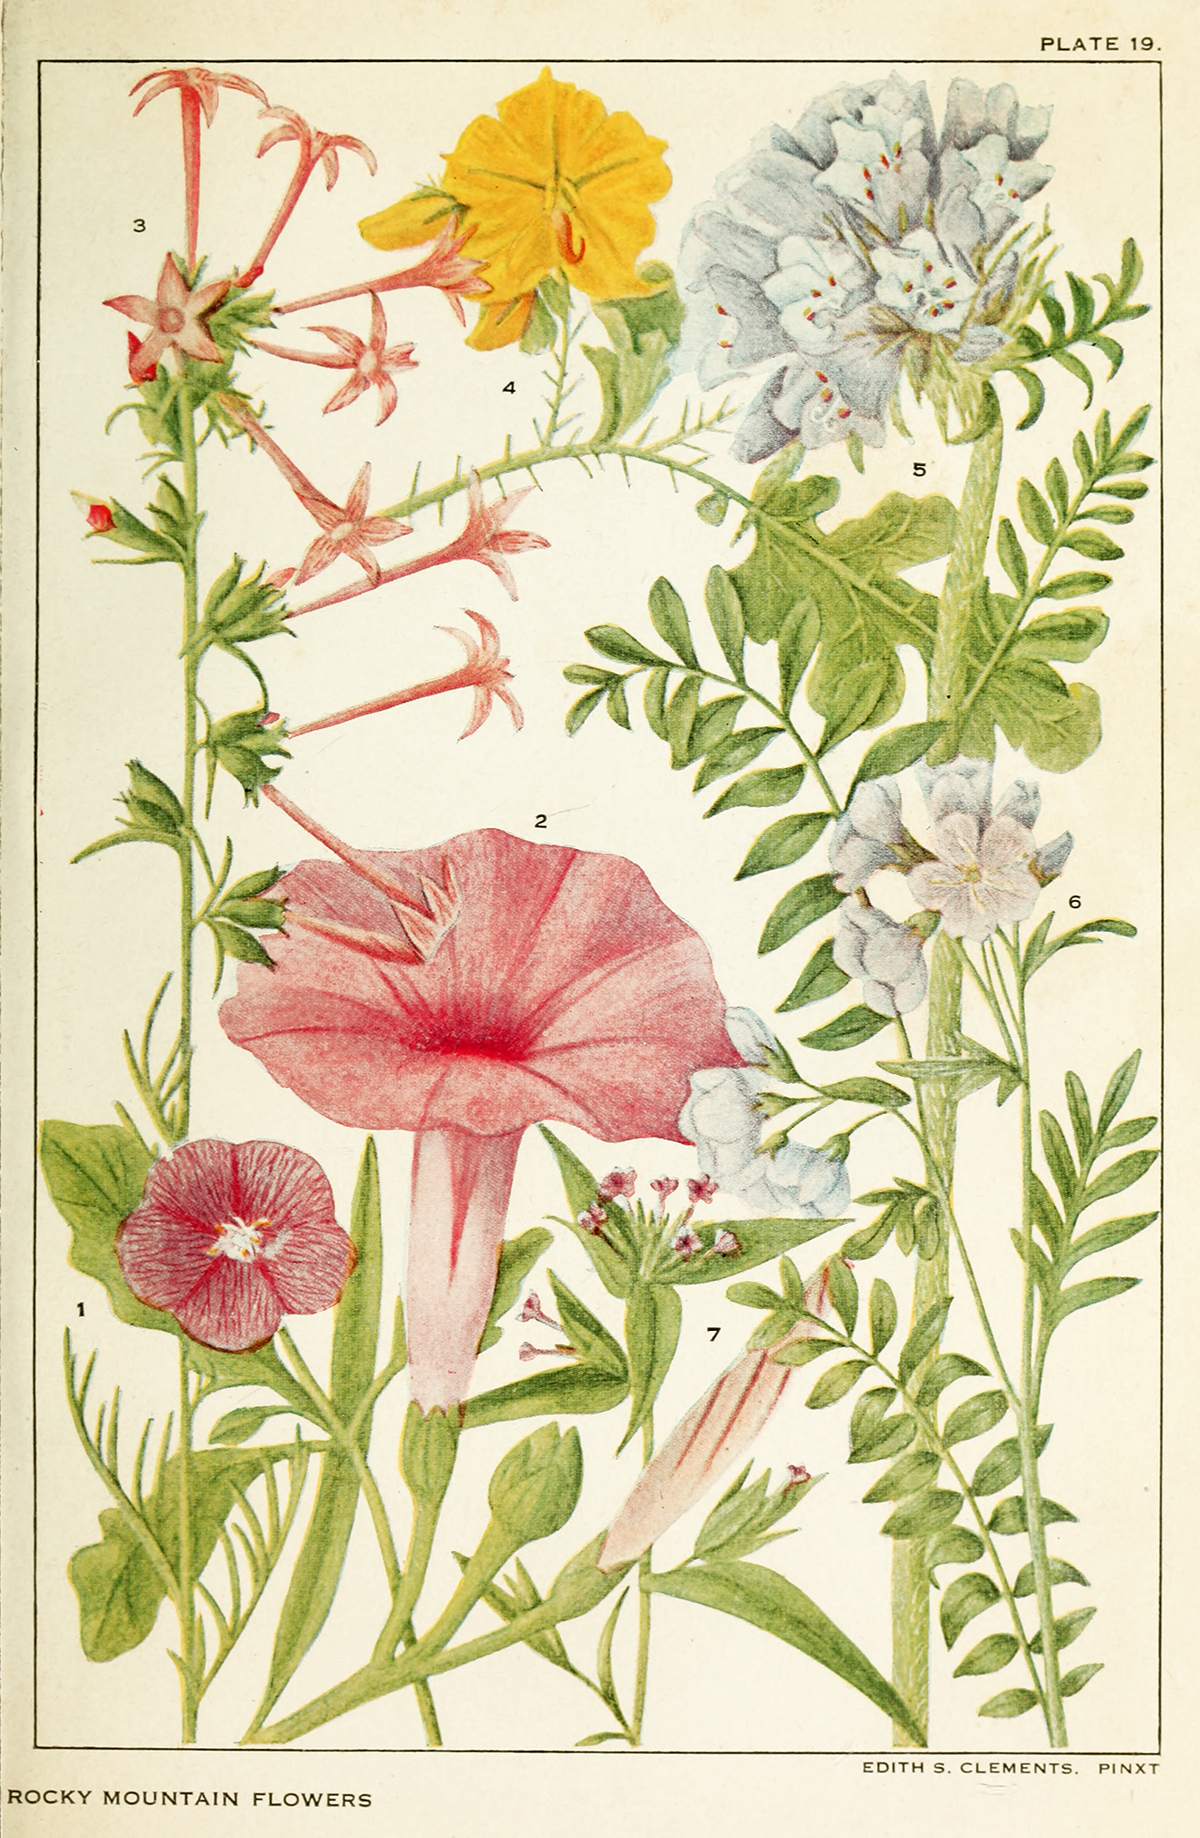 Rocky Mountain Flowers: The Daring Life and Art of Pioneering Plant Ecologist Edith Clements